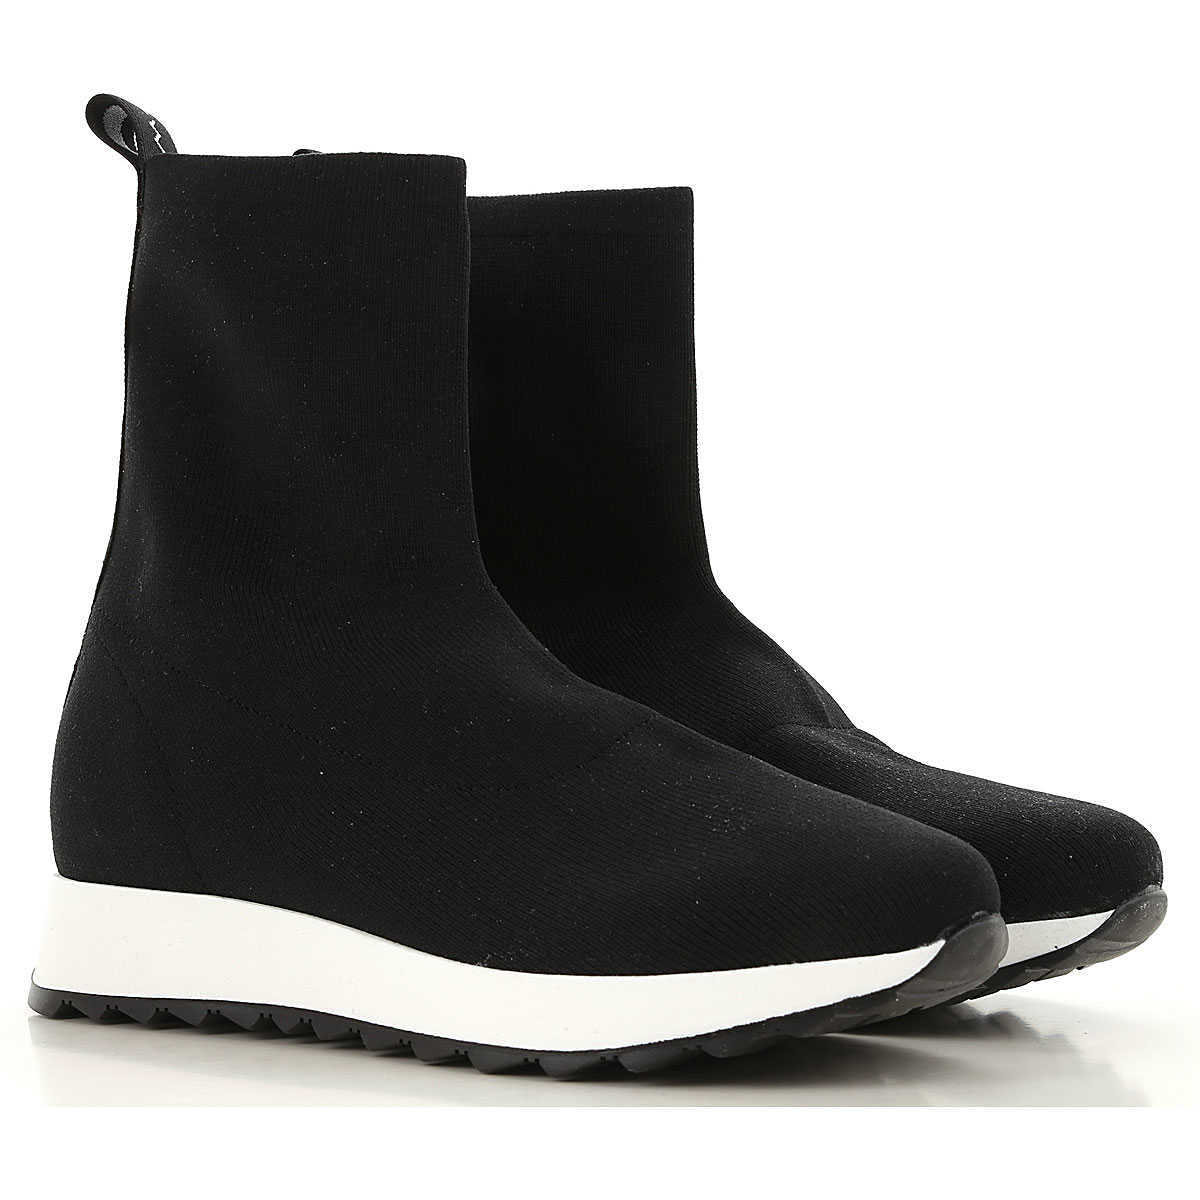 Anna Rita N Boots for Women Booties On Sale in Outlet - GOOFASH